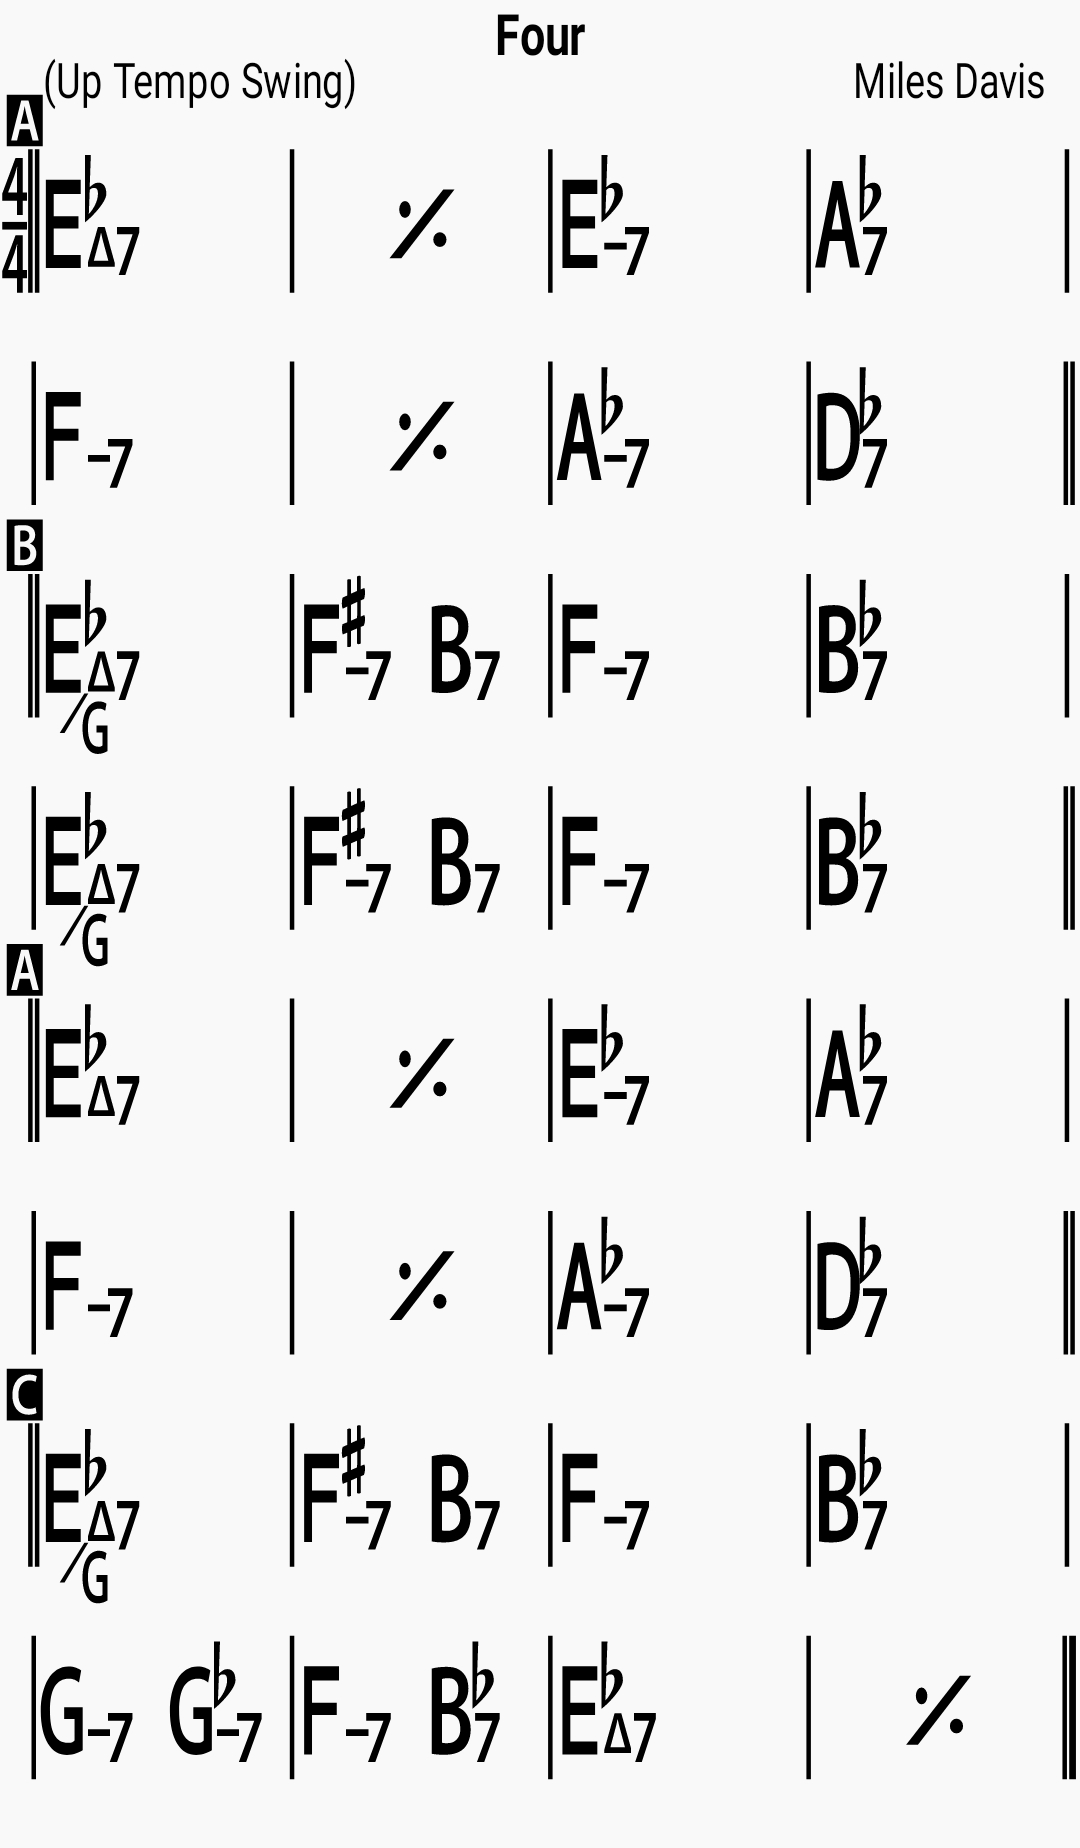 Chord chart for the jazz standard Four